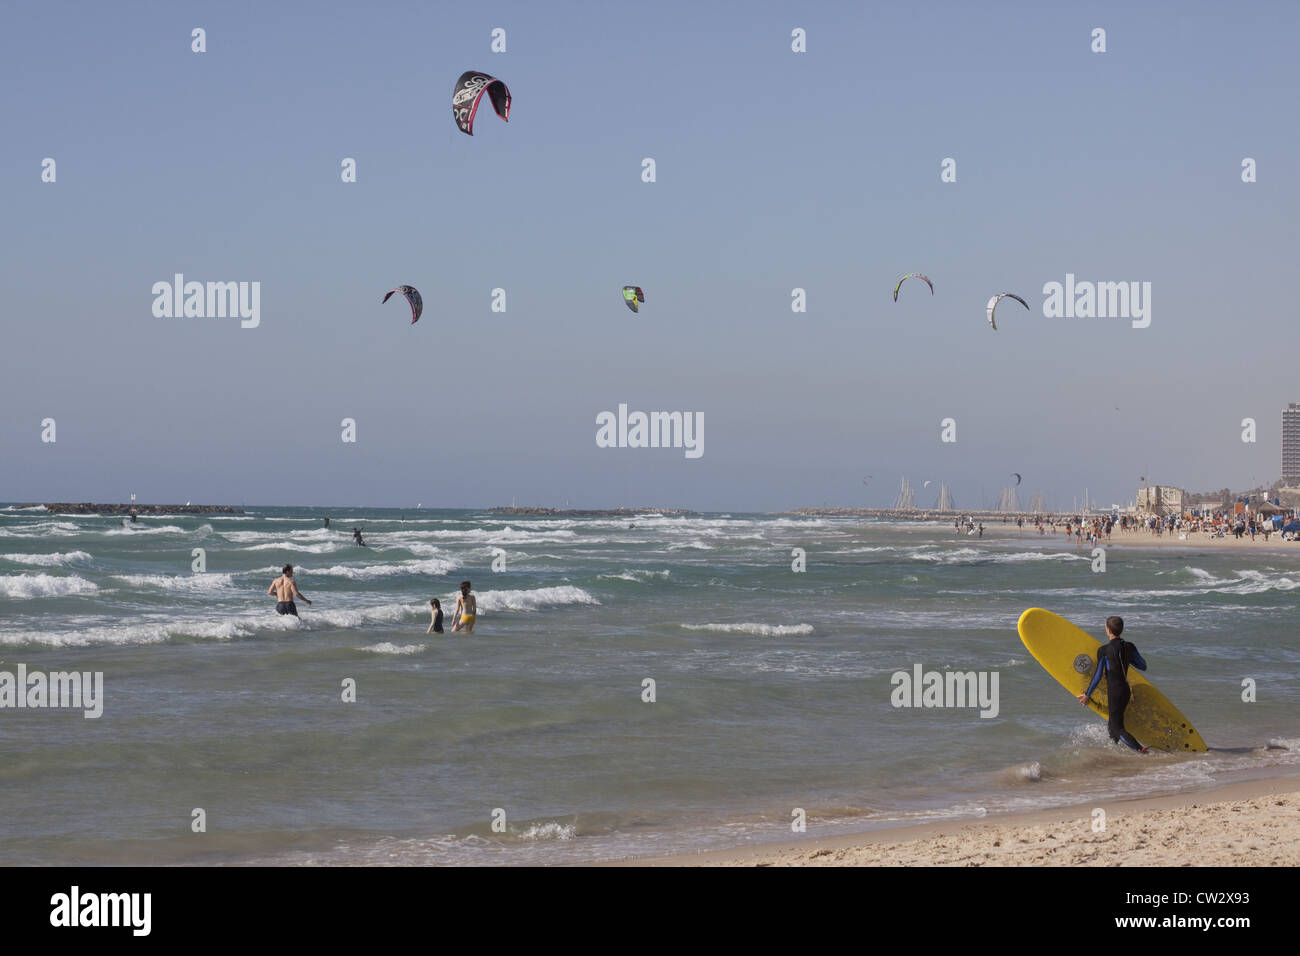 Surfer entrata in acqua con kite-surf e nuotatori in background, Tel Aviv, Israele Immagini Stock